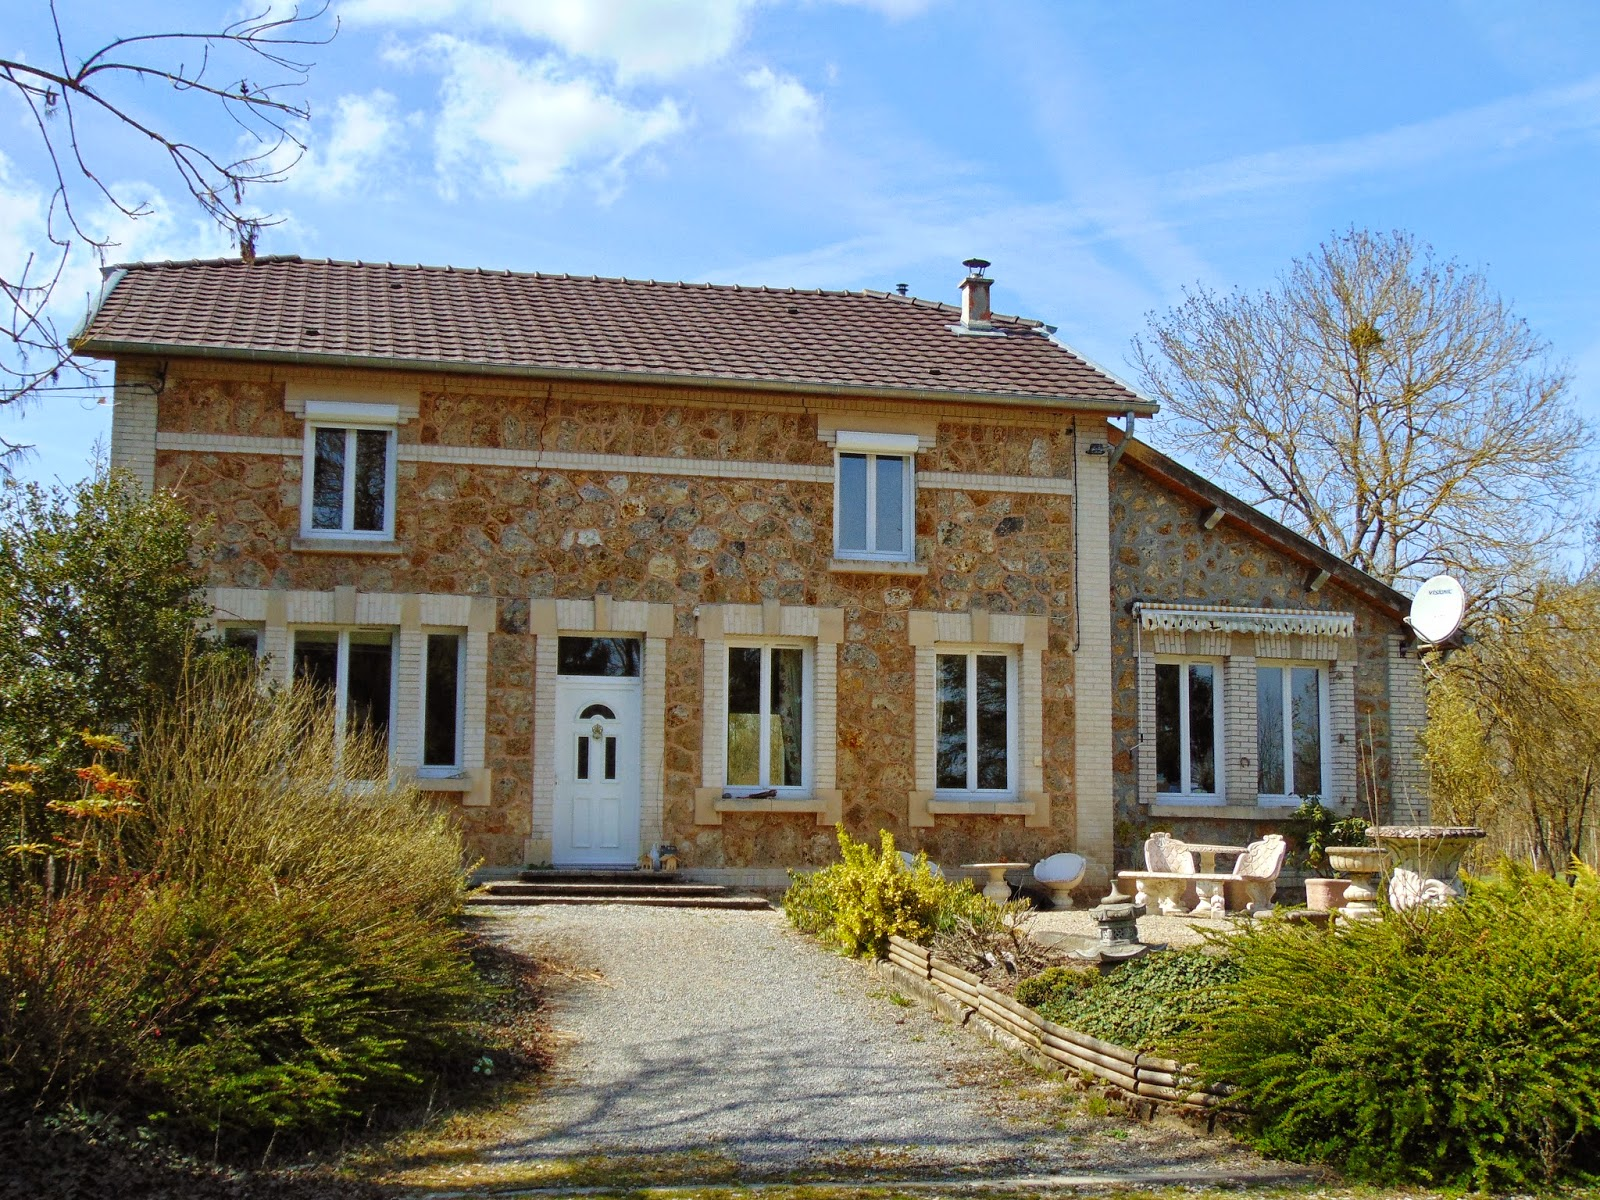 Live and dream a little dream and for a little bit of for French countryside house